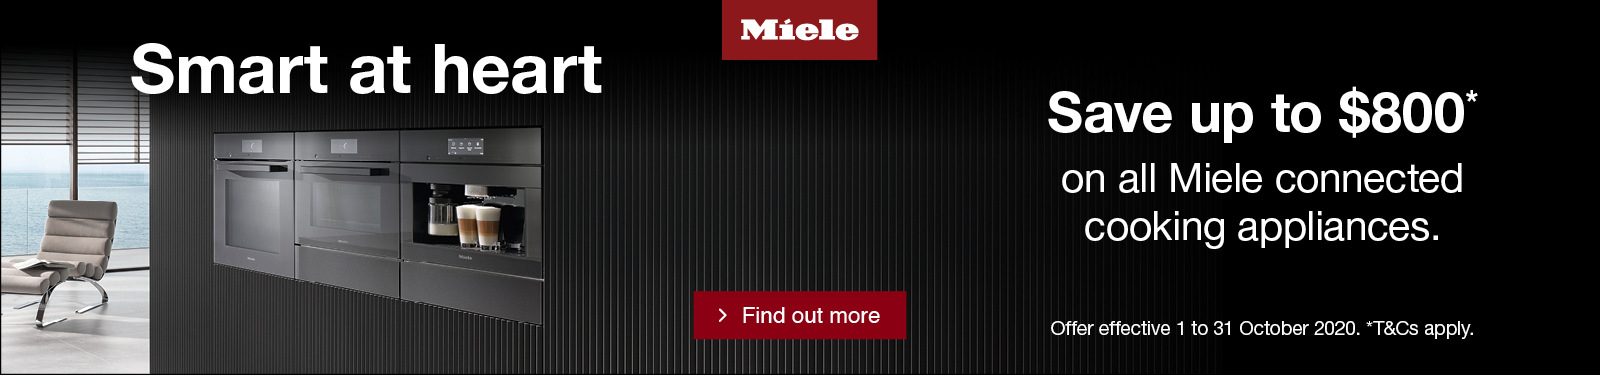 Miele Save up to $800 on Cooking